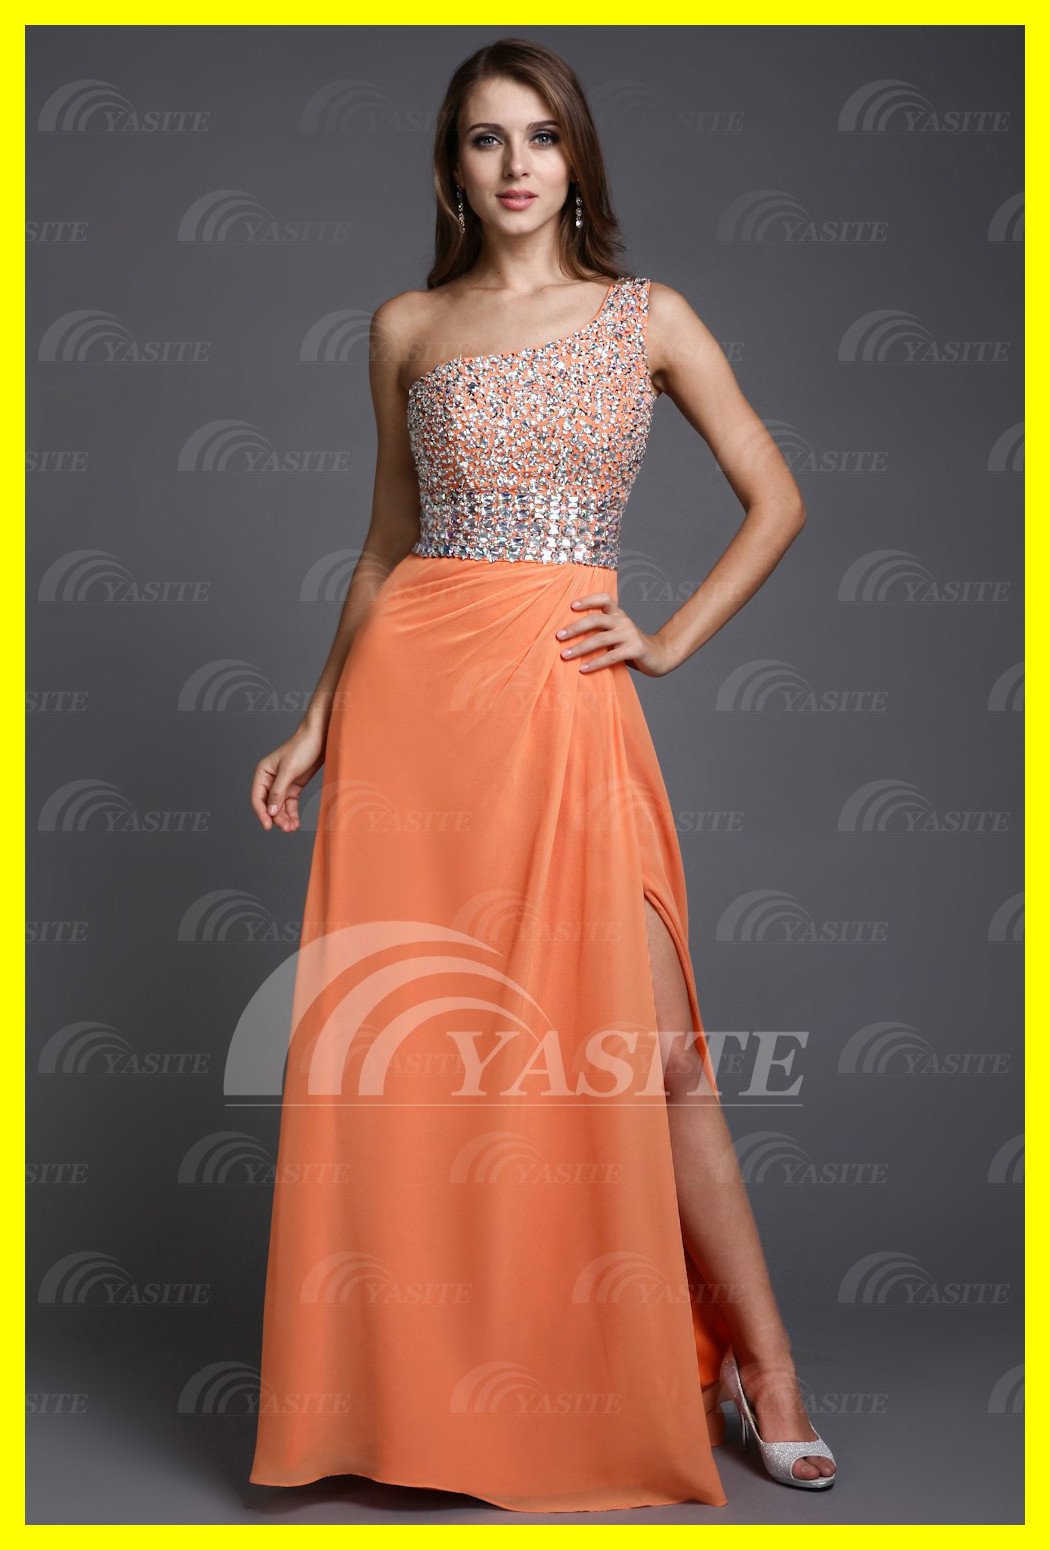 Rent formal dresses online gallery dresses design ideas formal dresses to rent online image collections dresses design ideas rent a prom dress online cocktail ombrellifo Image collections